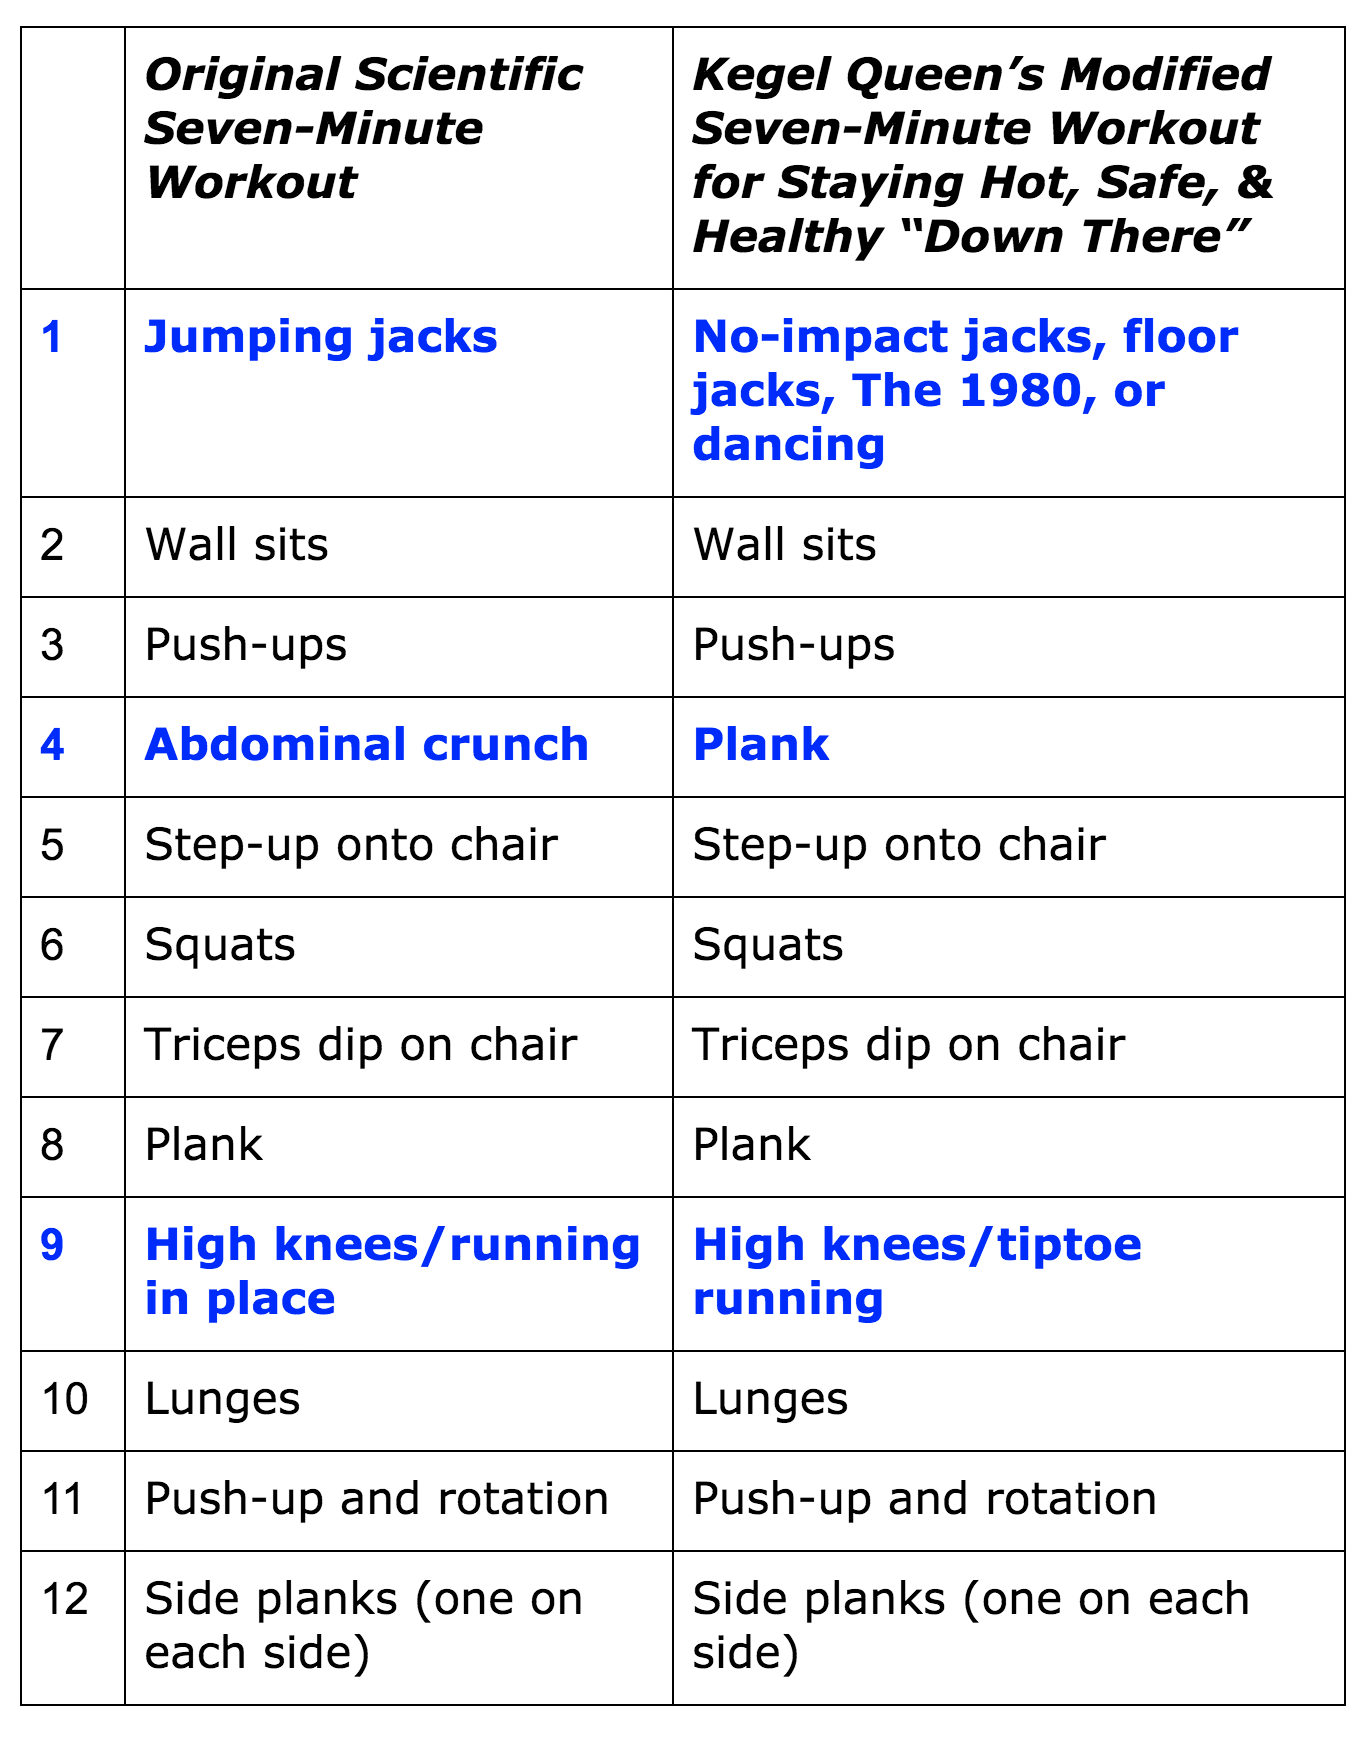 KQ seven minute workout table